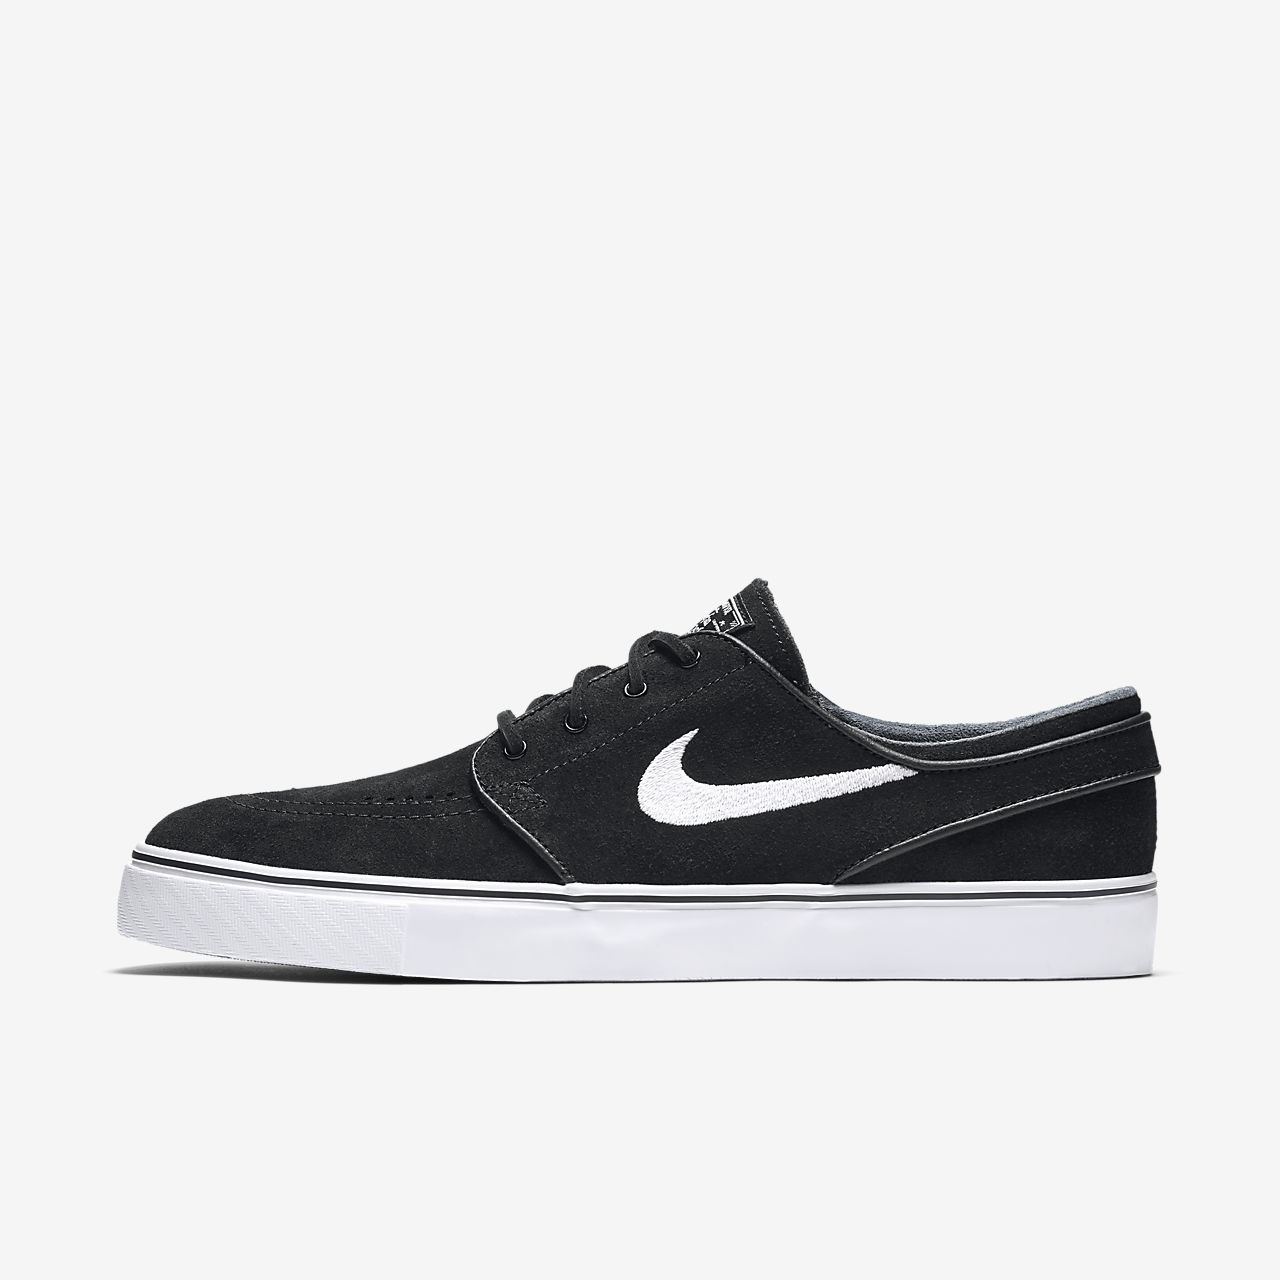 lowest price 5024a 61b00 ... Chaussure de skateboard Nike SB Zoom Stefan Janoski OG pour Homme